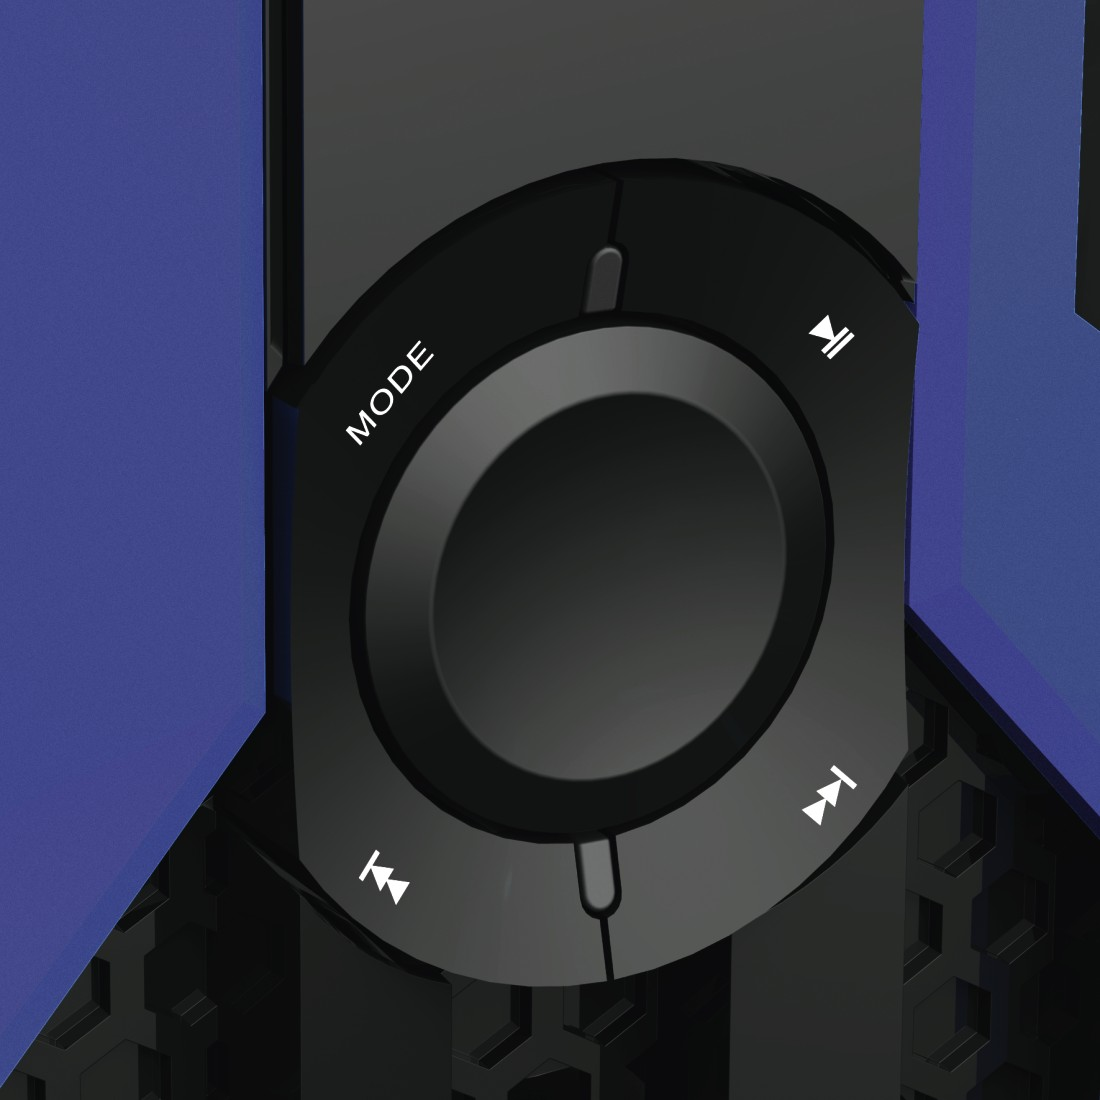 dex3 Druckfähiges Detail 3 - Hama, Gaming-Sound-System uRage SoundZ 2.1 Evolution